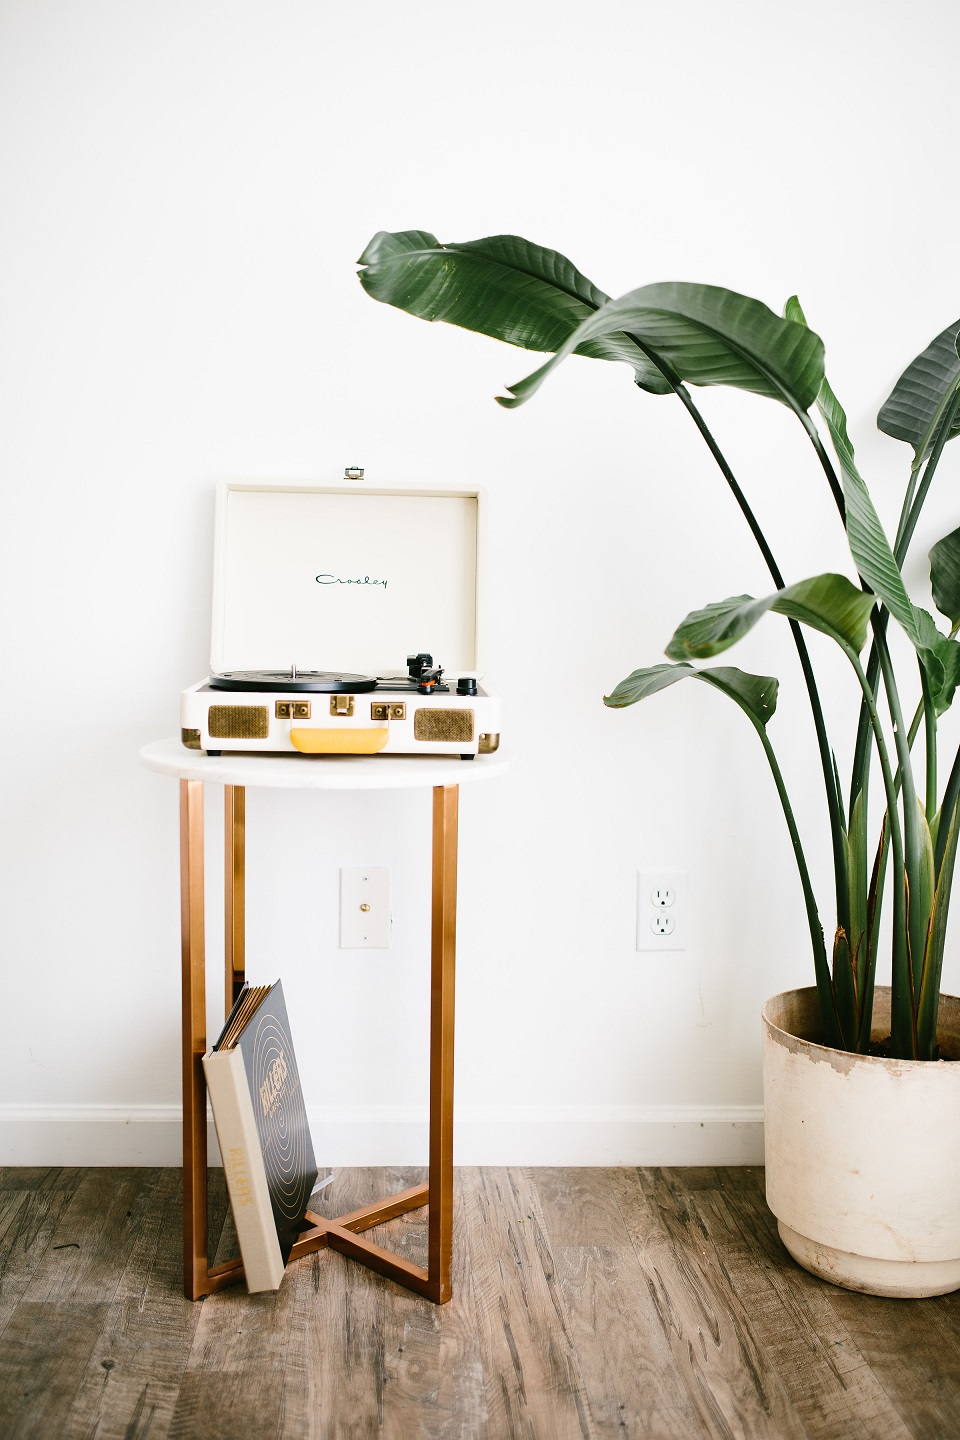 Urban Outfitters Office Record Player Cinema Box Instax Polaroid Printer // Charleston Fashion Blogger Dannon Like The Yogurt